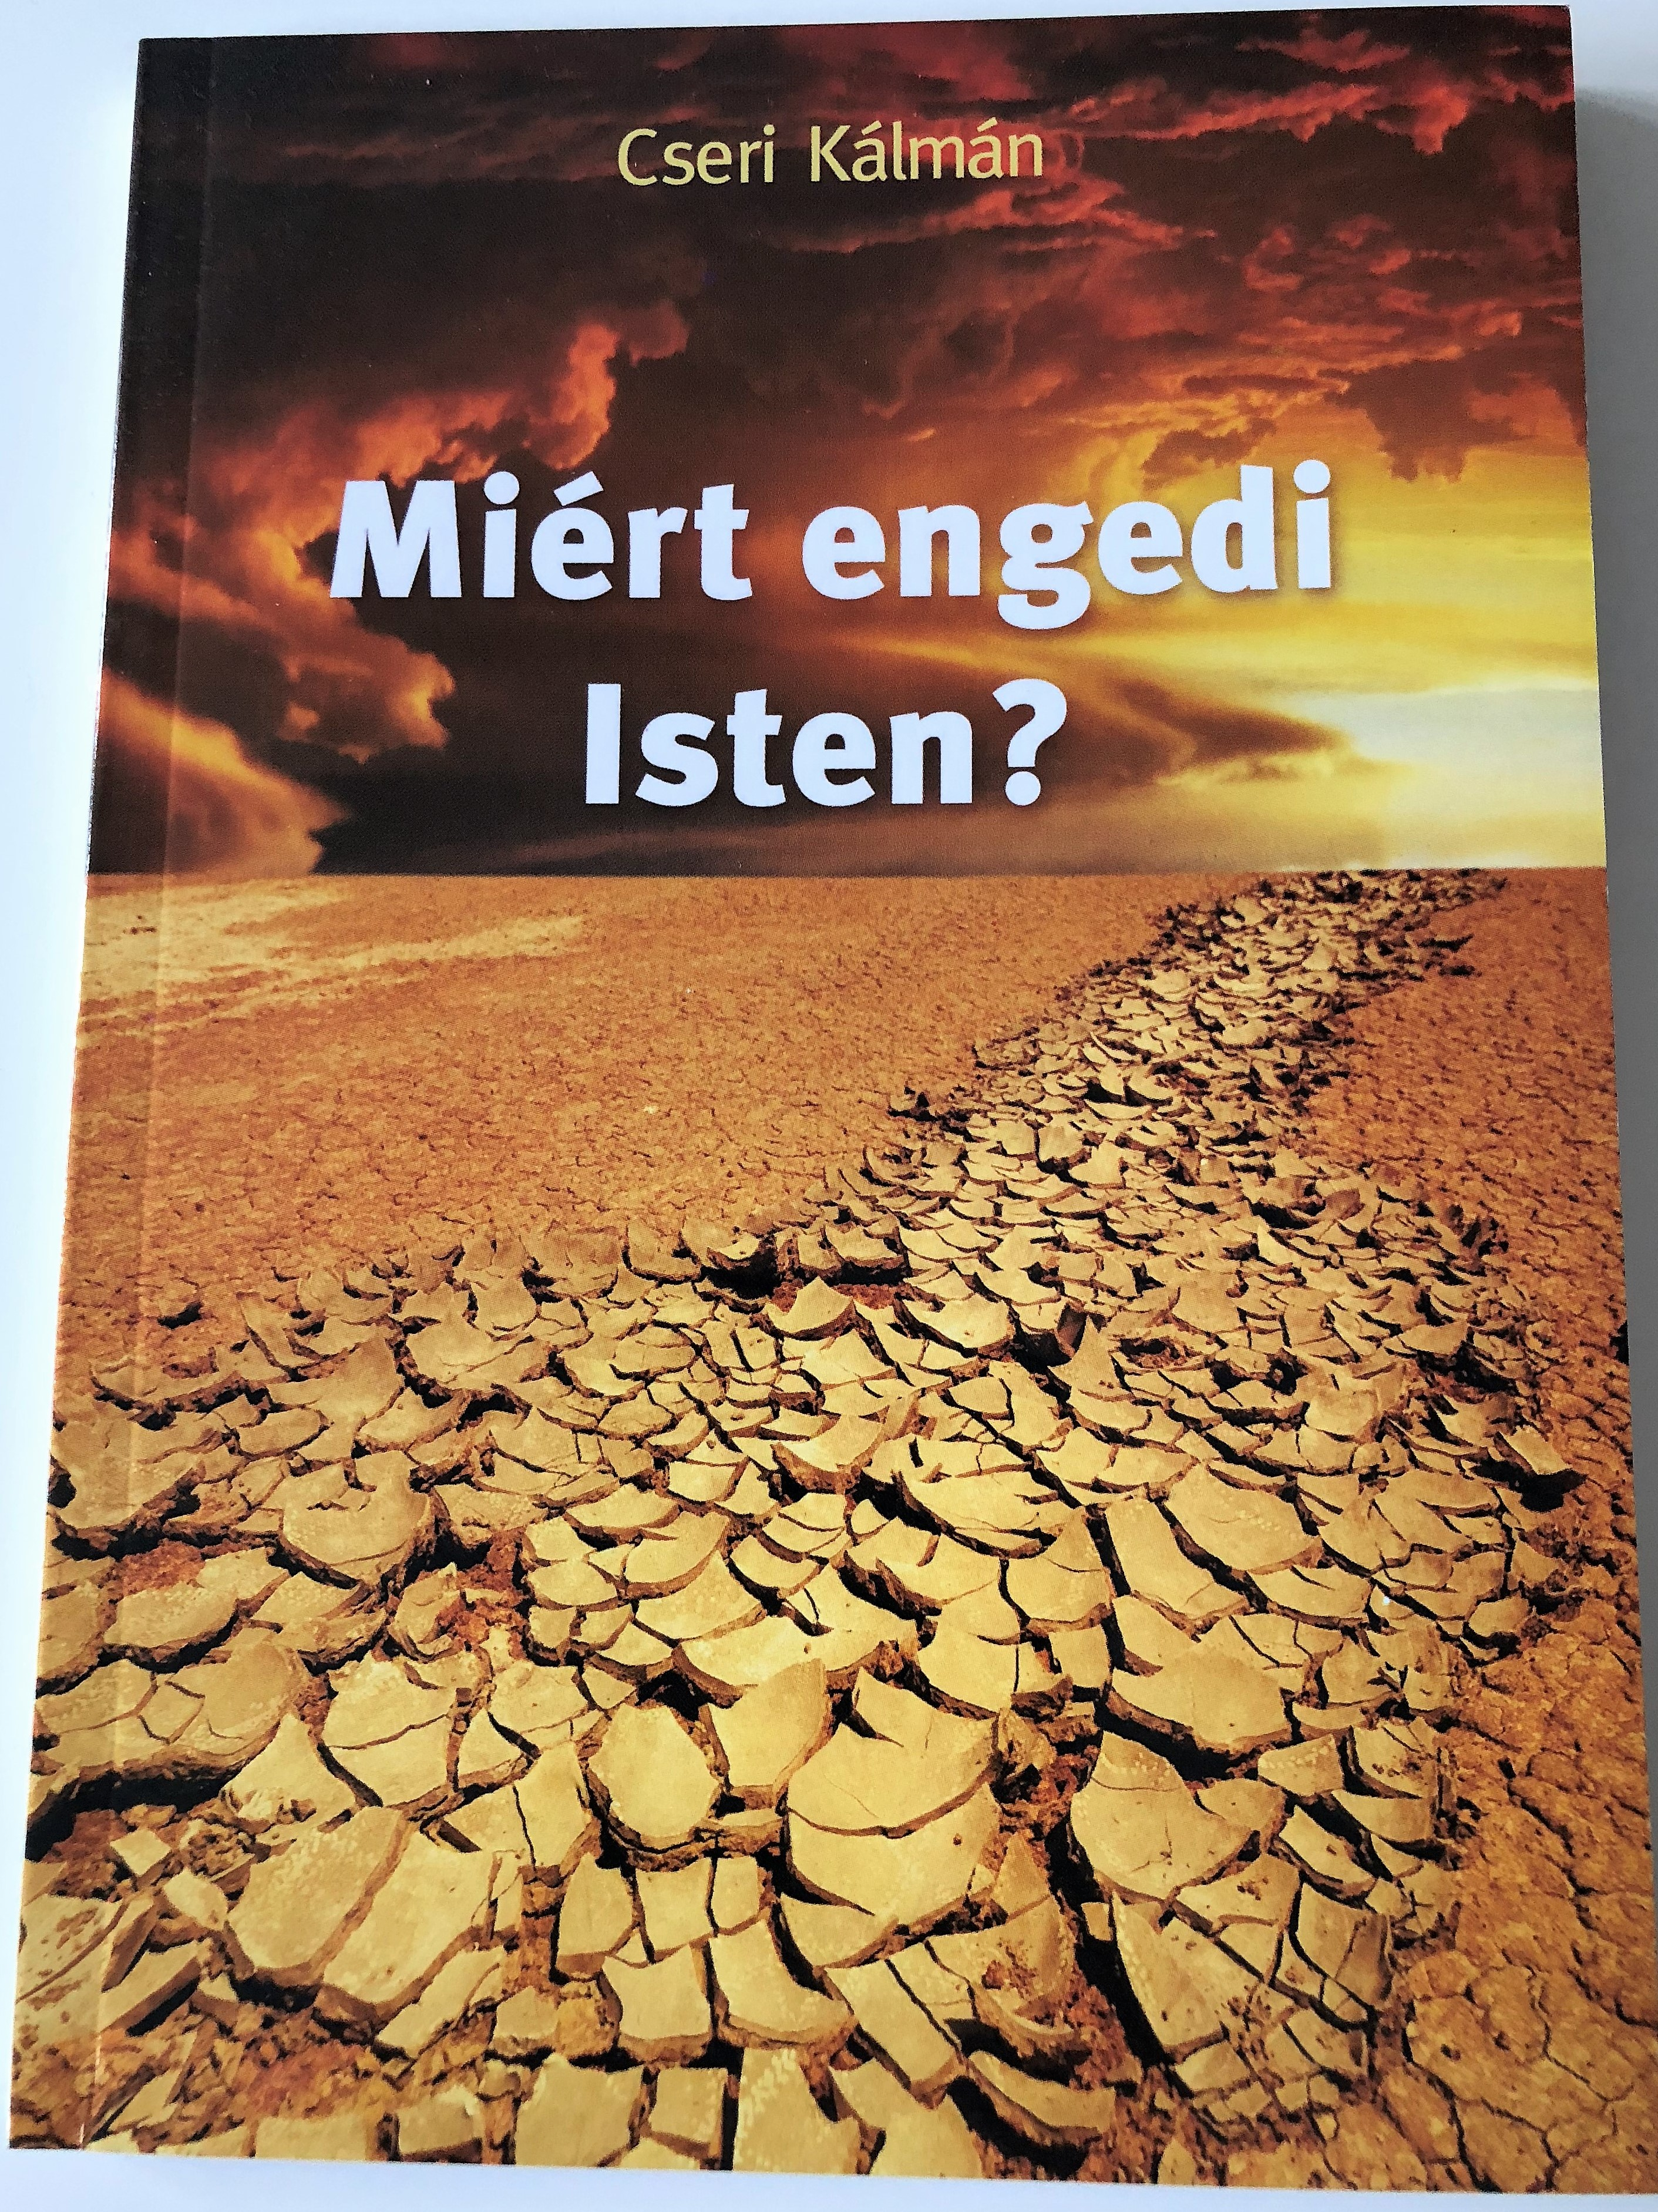 mi-rt-engedi-isten-why-does-god-allow...-the-cause-and-aim-of-human-suffering-sermons-in-hungarian-by-cseri-k-lm-n-paperback-2013-1-.jpg